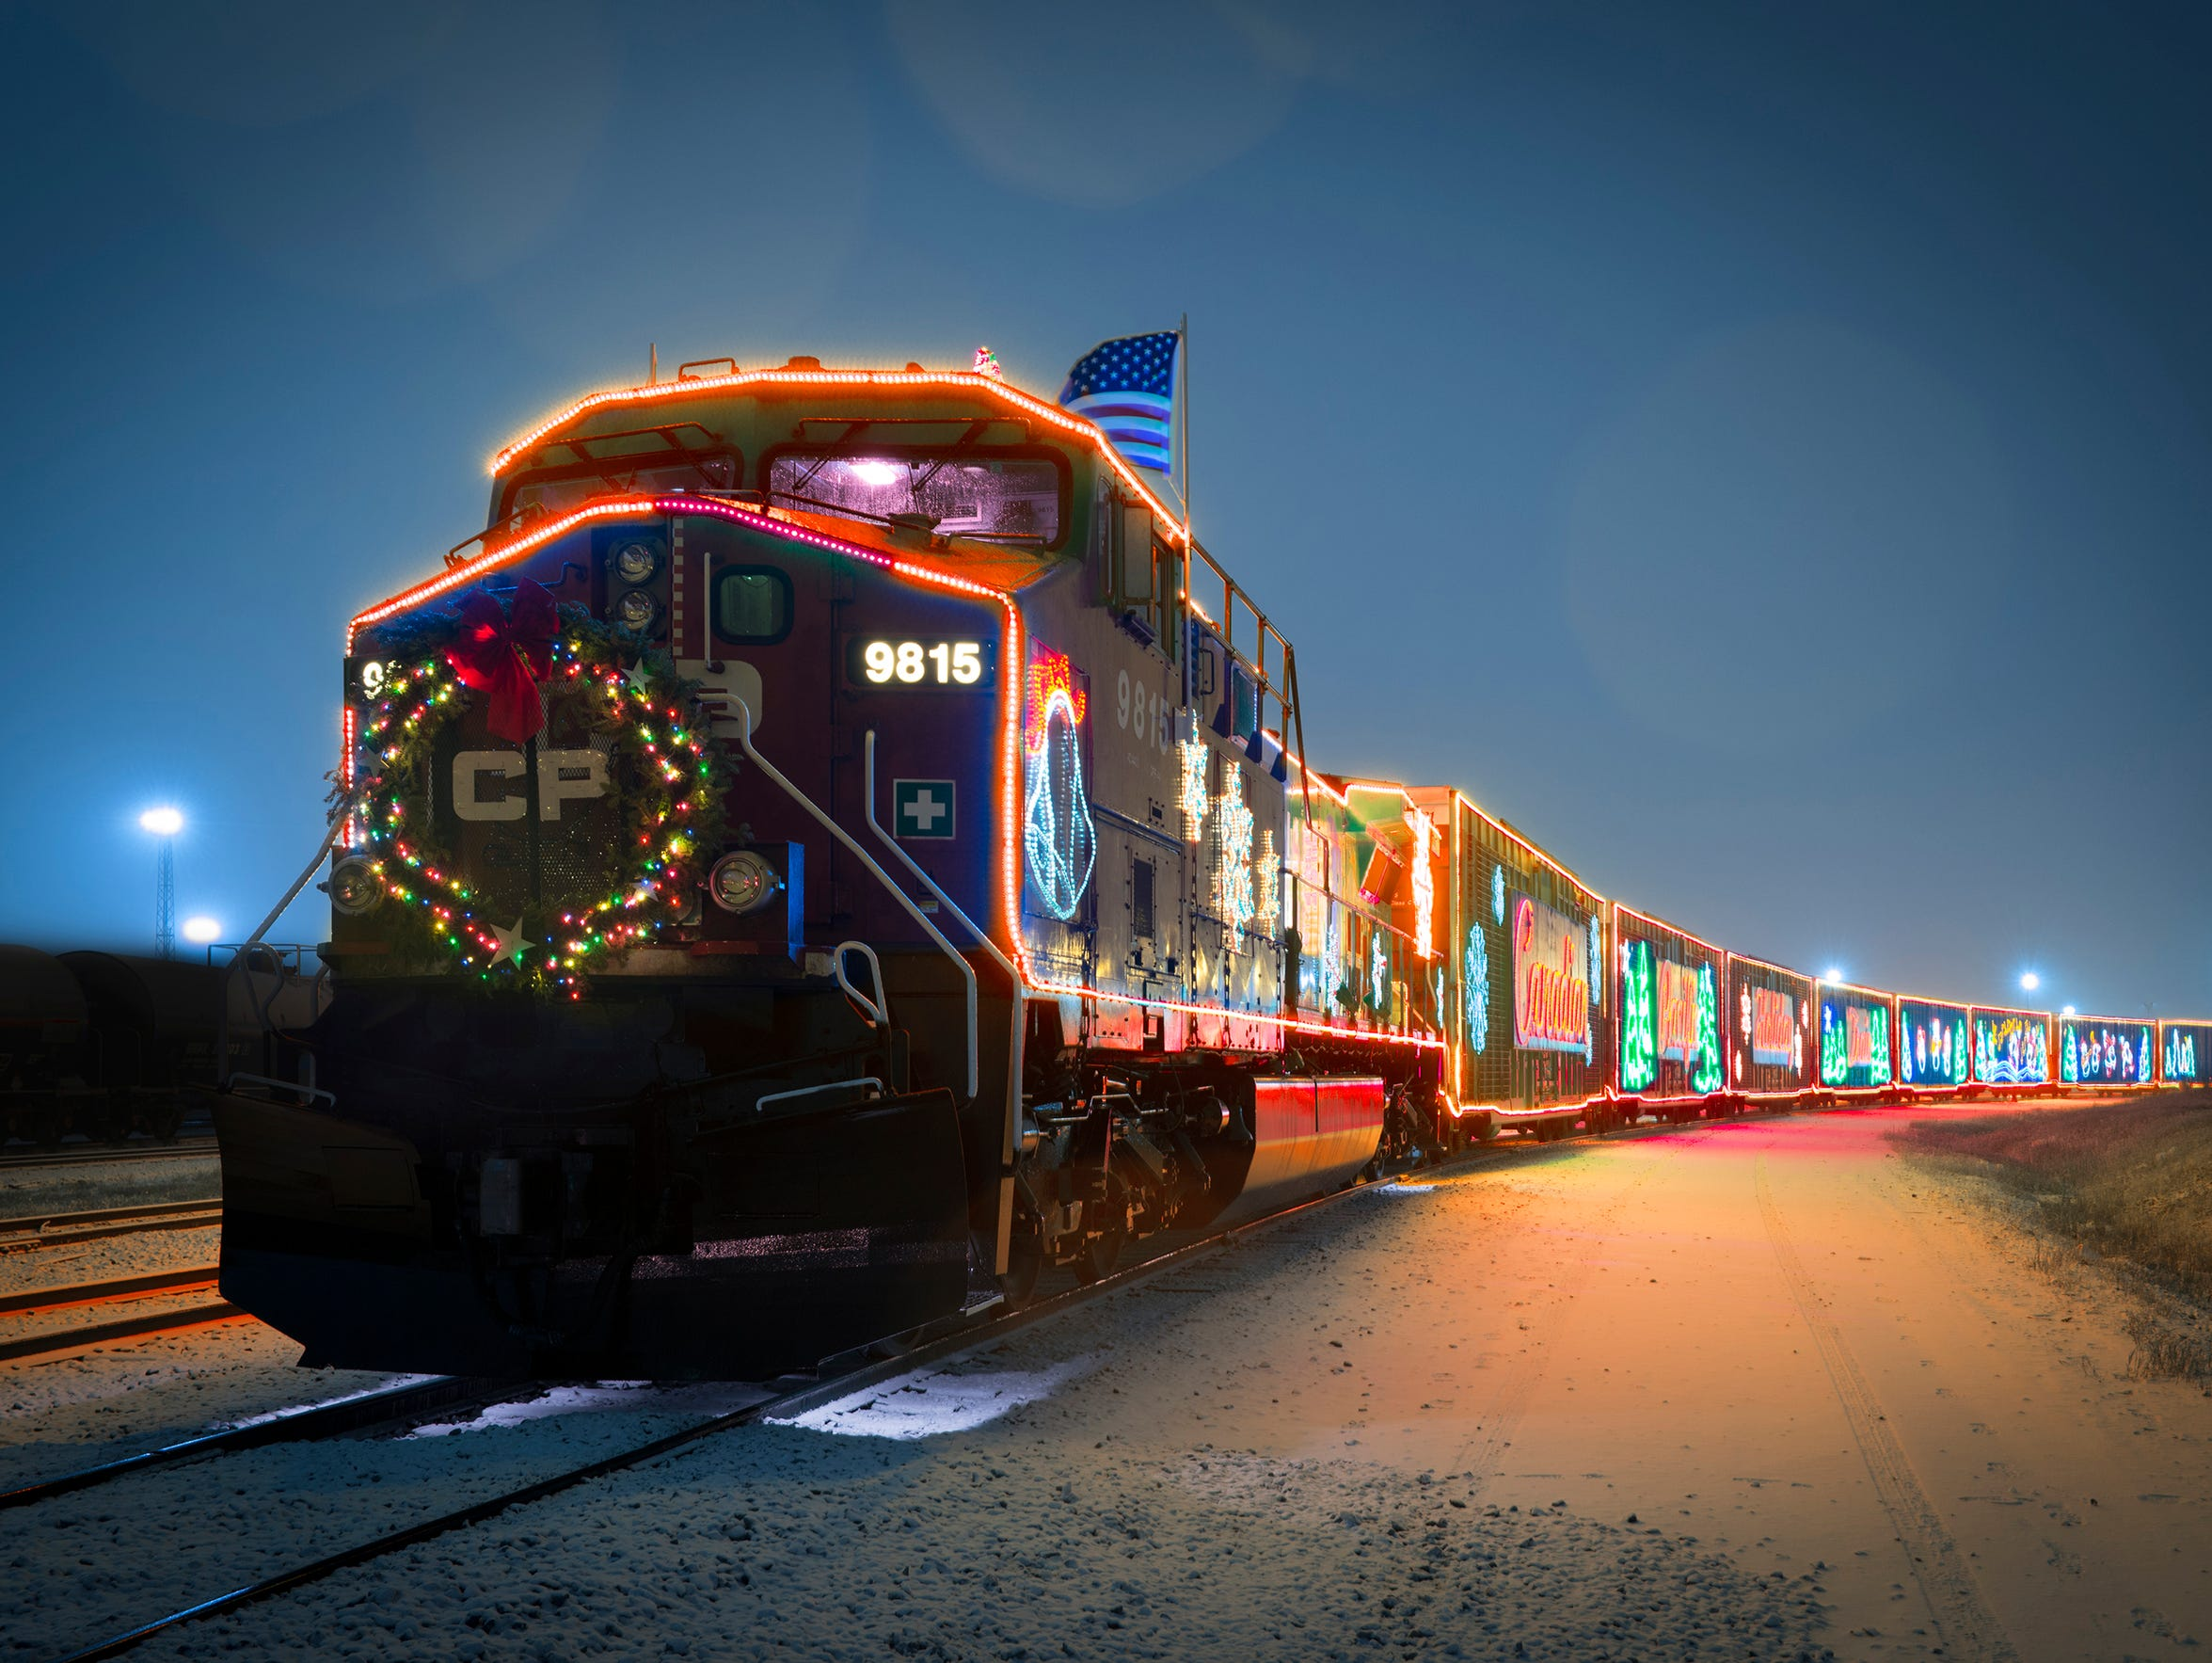 The Holiday Train comes through lake Country on Dec. 3 this year.